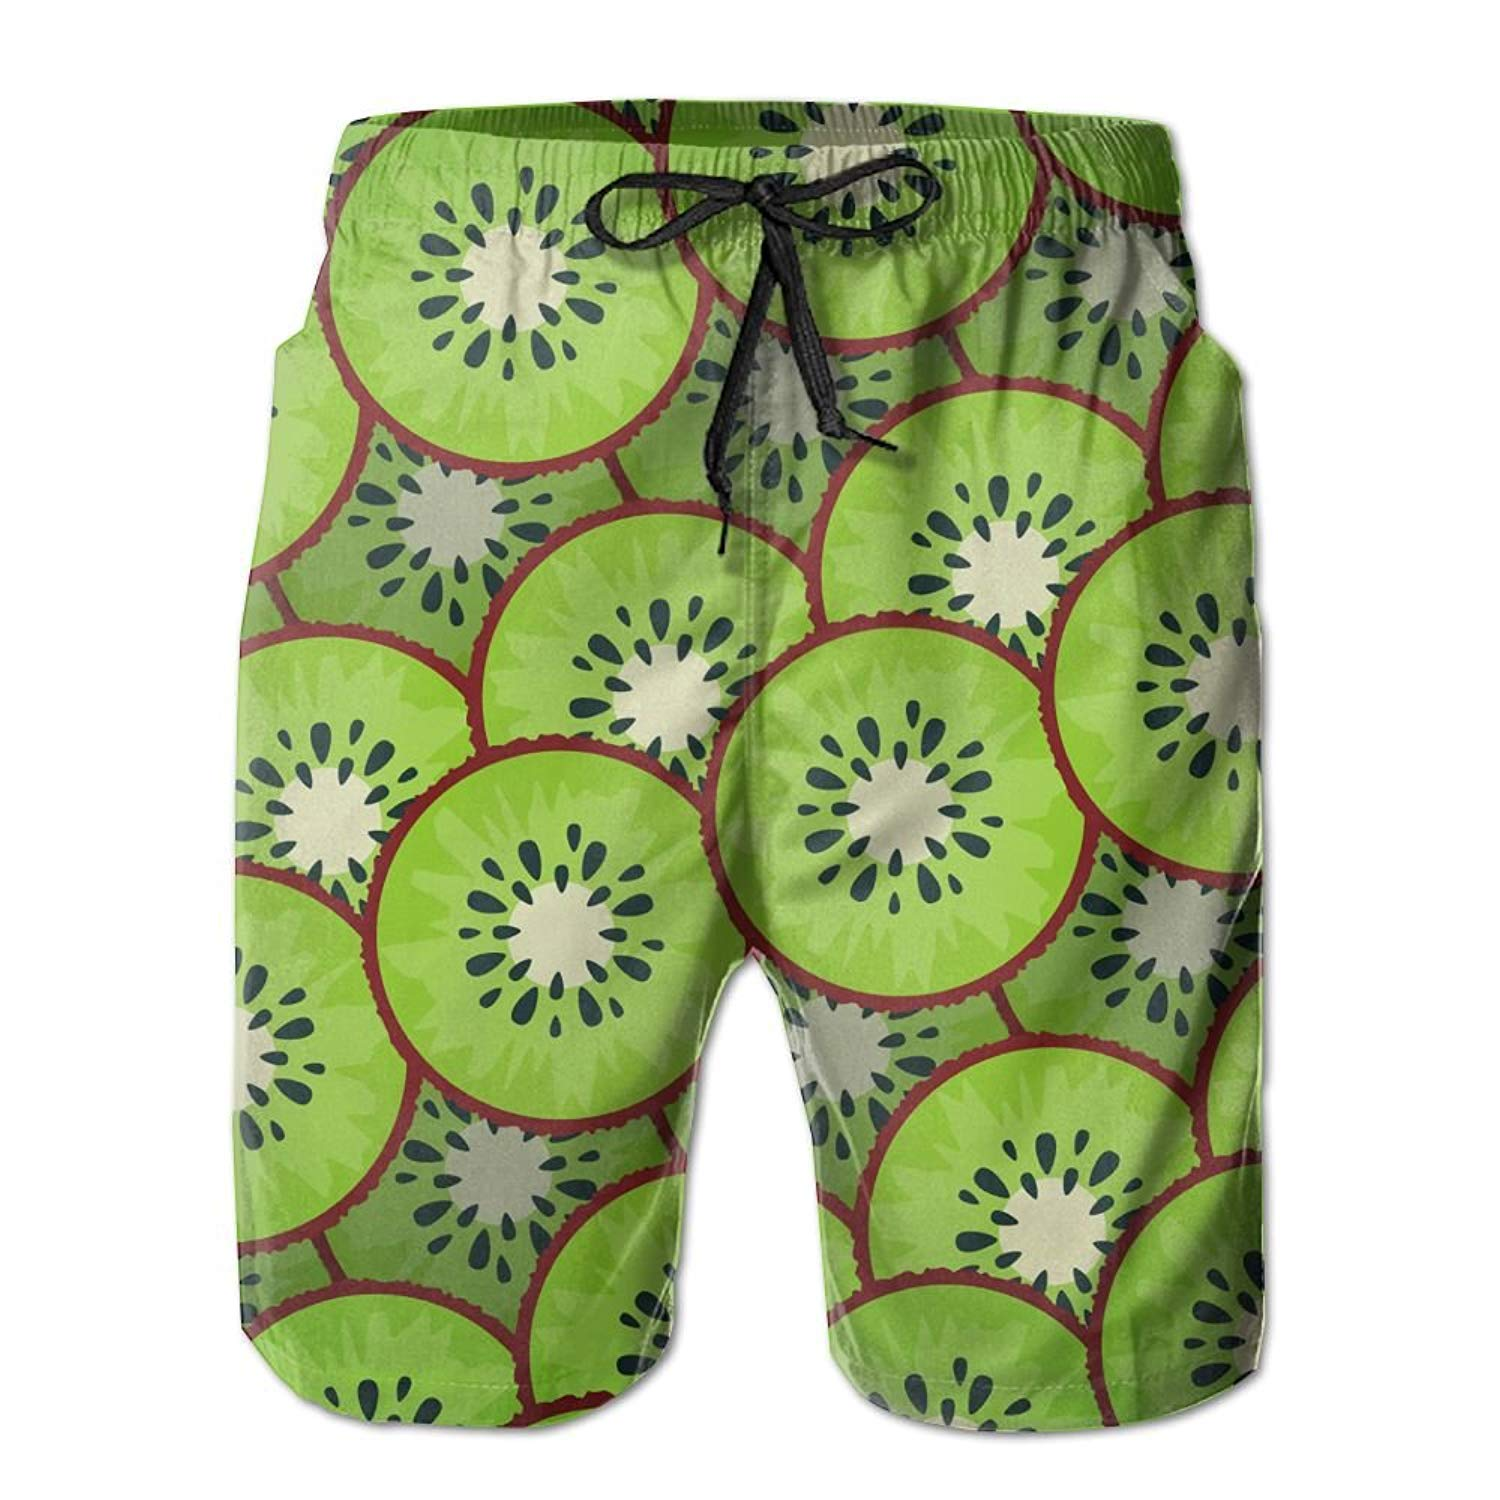 ZKHTO Kiwi Pattern Custom Summer Casual Beach Shorts Pants for Men Boys